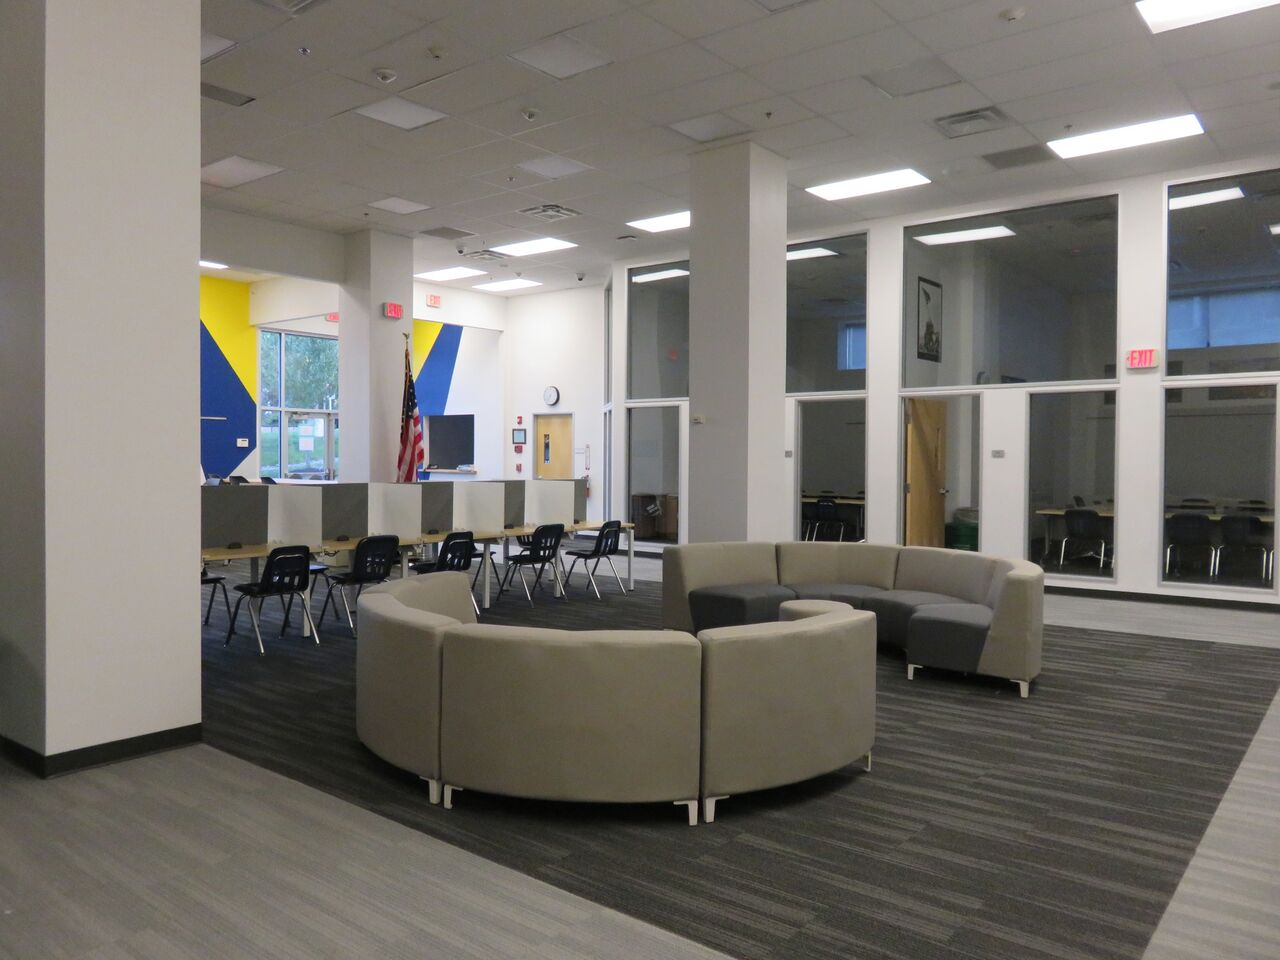 School Renovation, NY